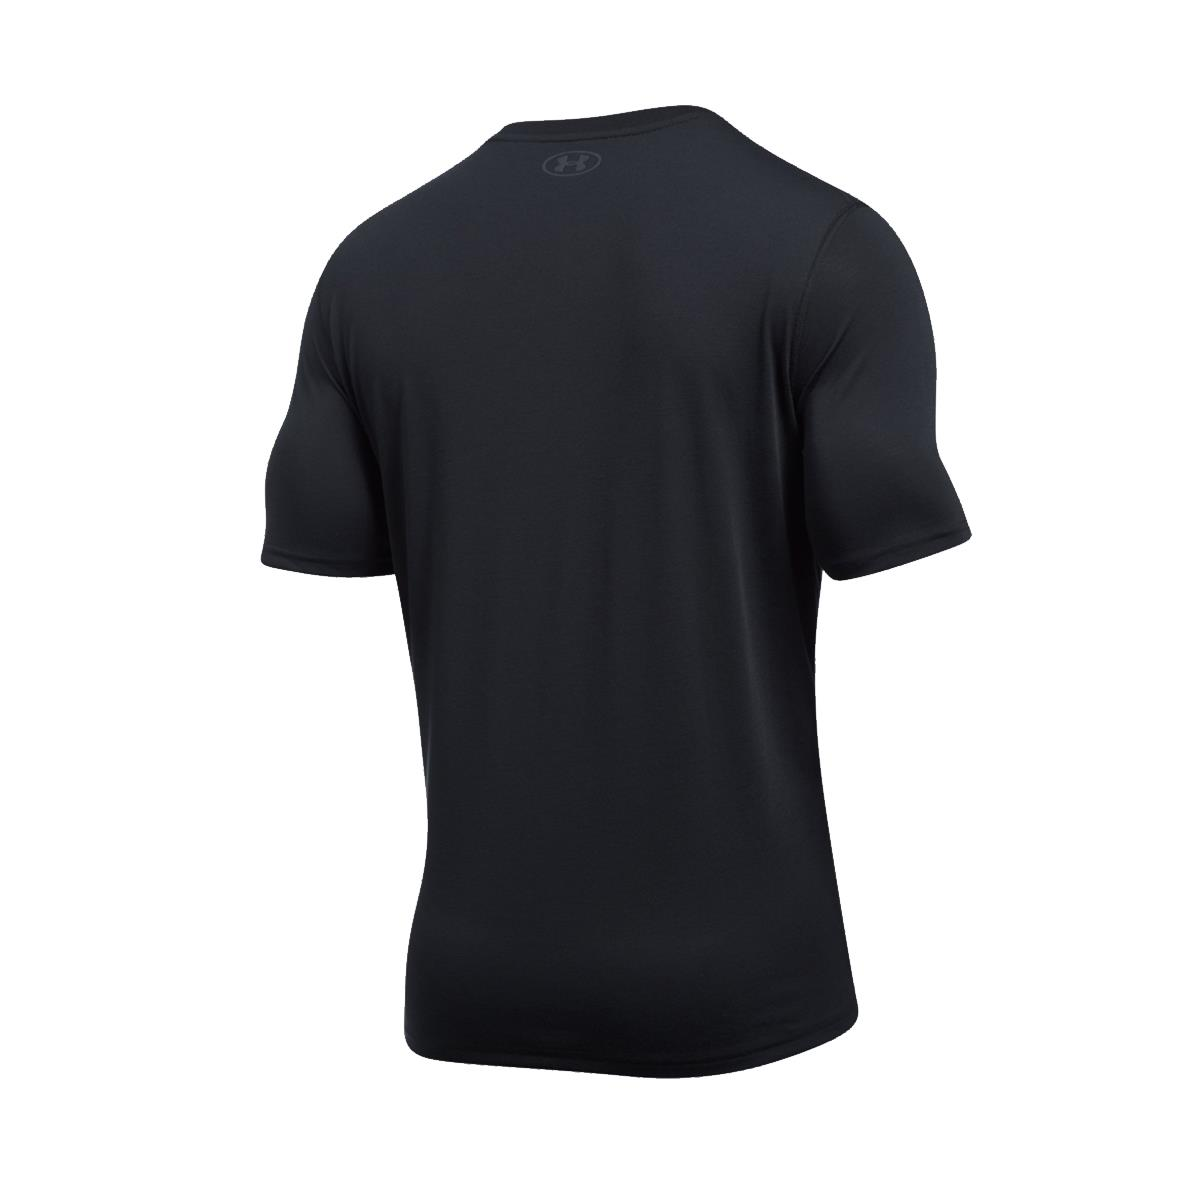 8c58c1d95590e Camiseta Under Armour Run Graphic Masculina